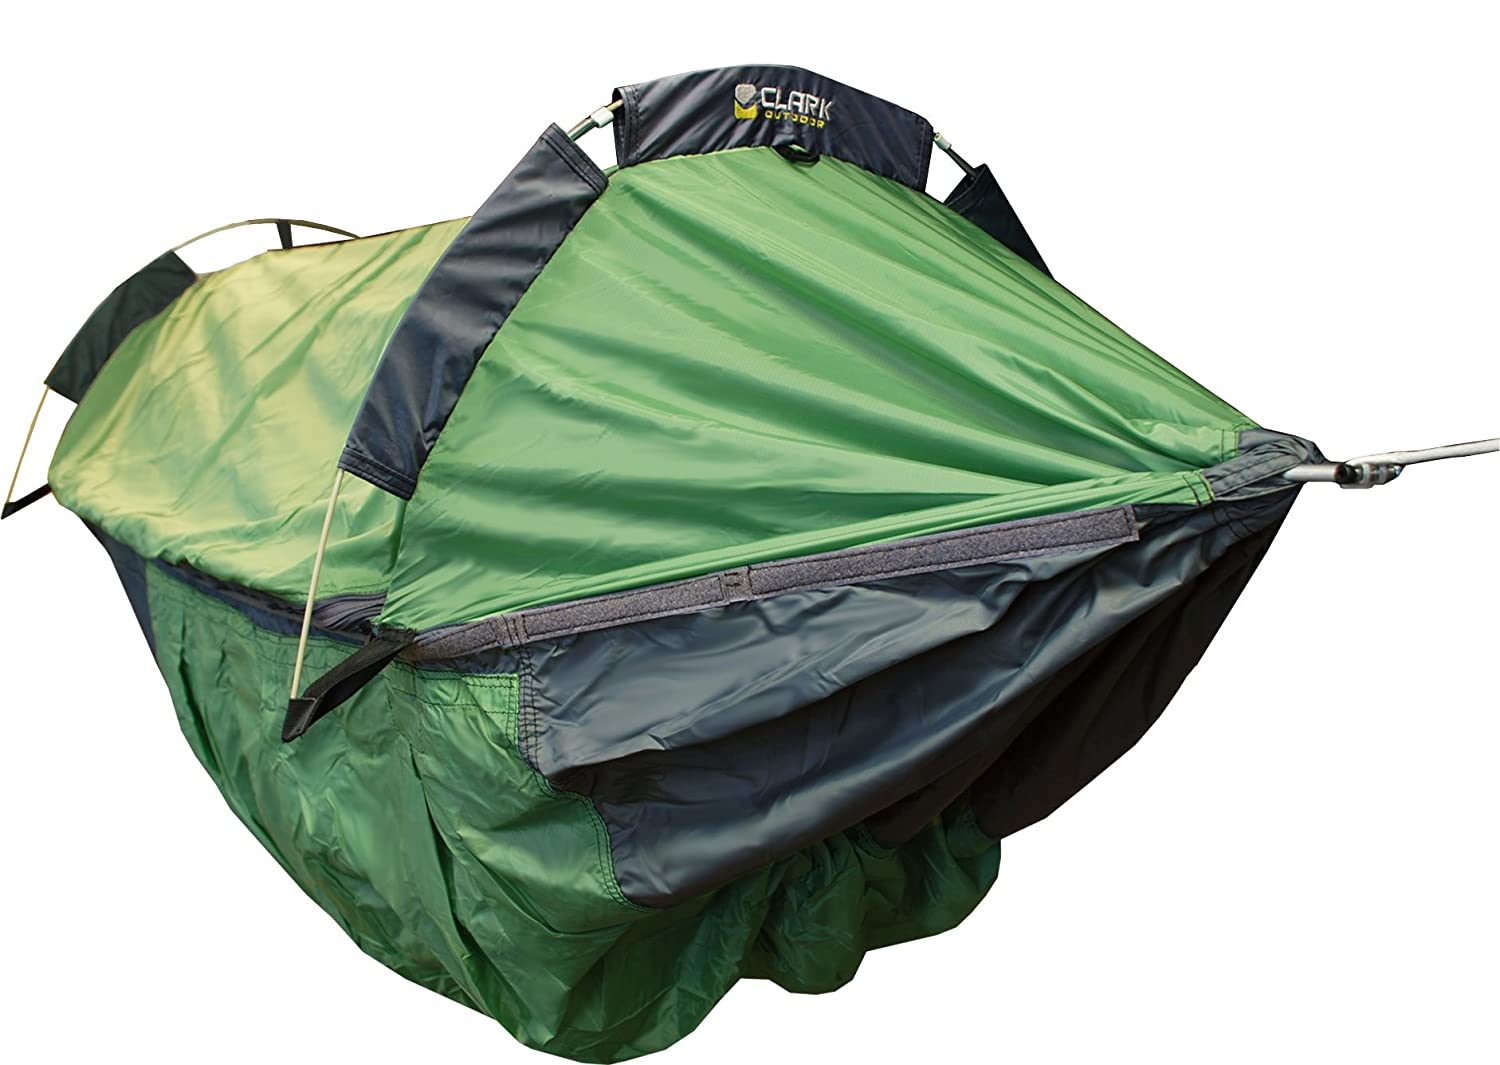 Amazon.com: Clark NX-270 Four-Season Camping Hammock (Mountain Green):  Sports & Outdoors